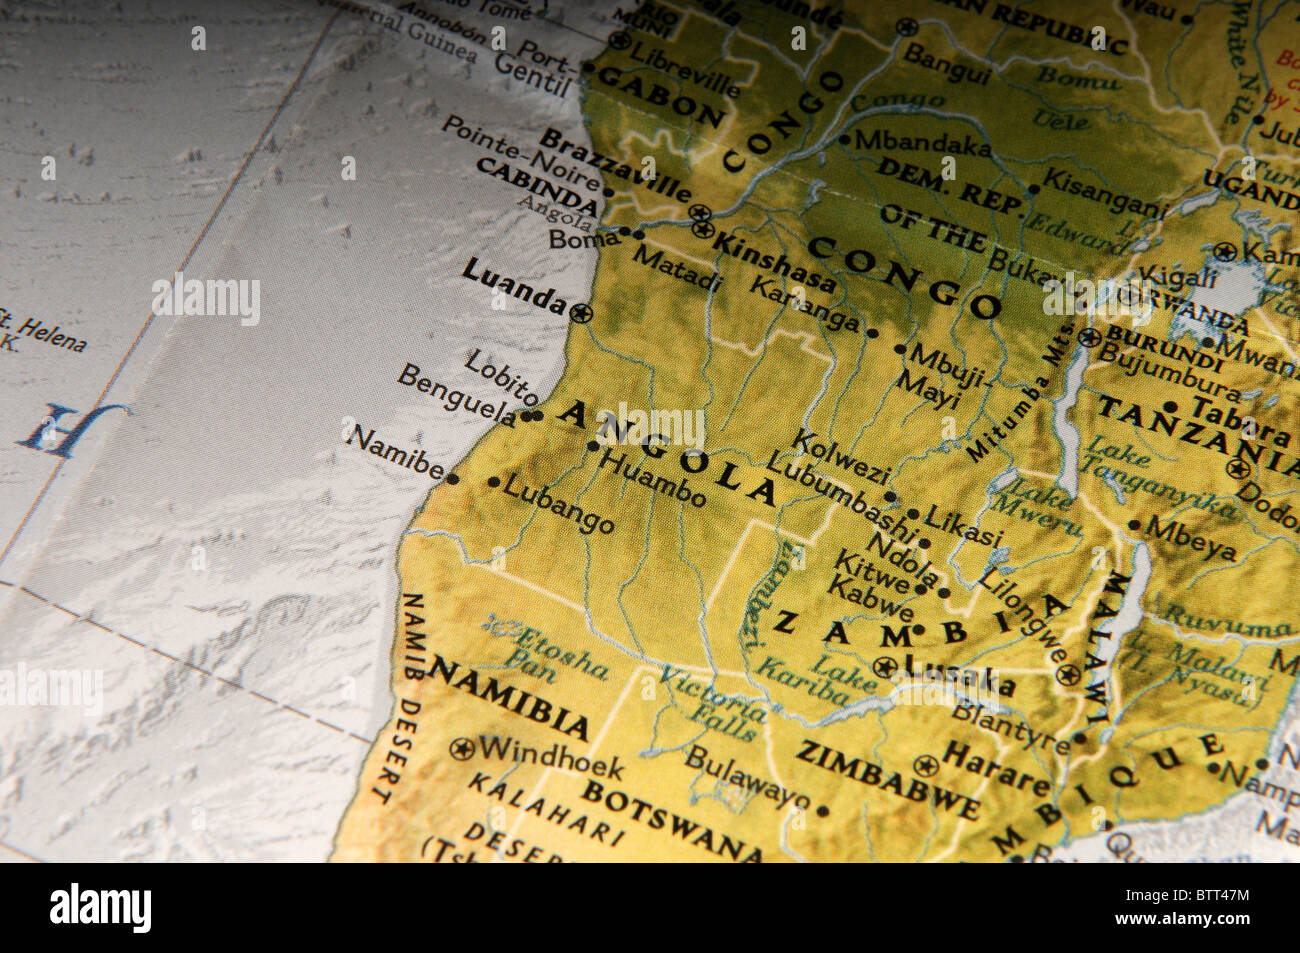 Map of Angola Congo Namibia and various countries in Africa - Stock Image